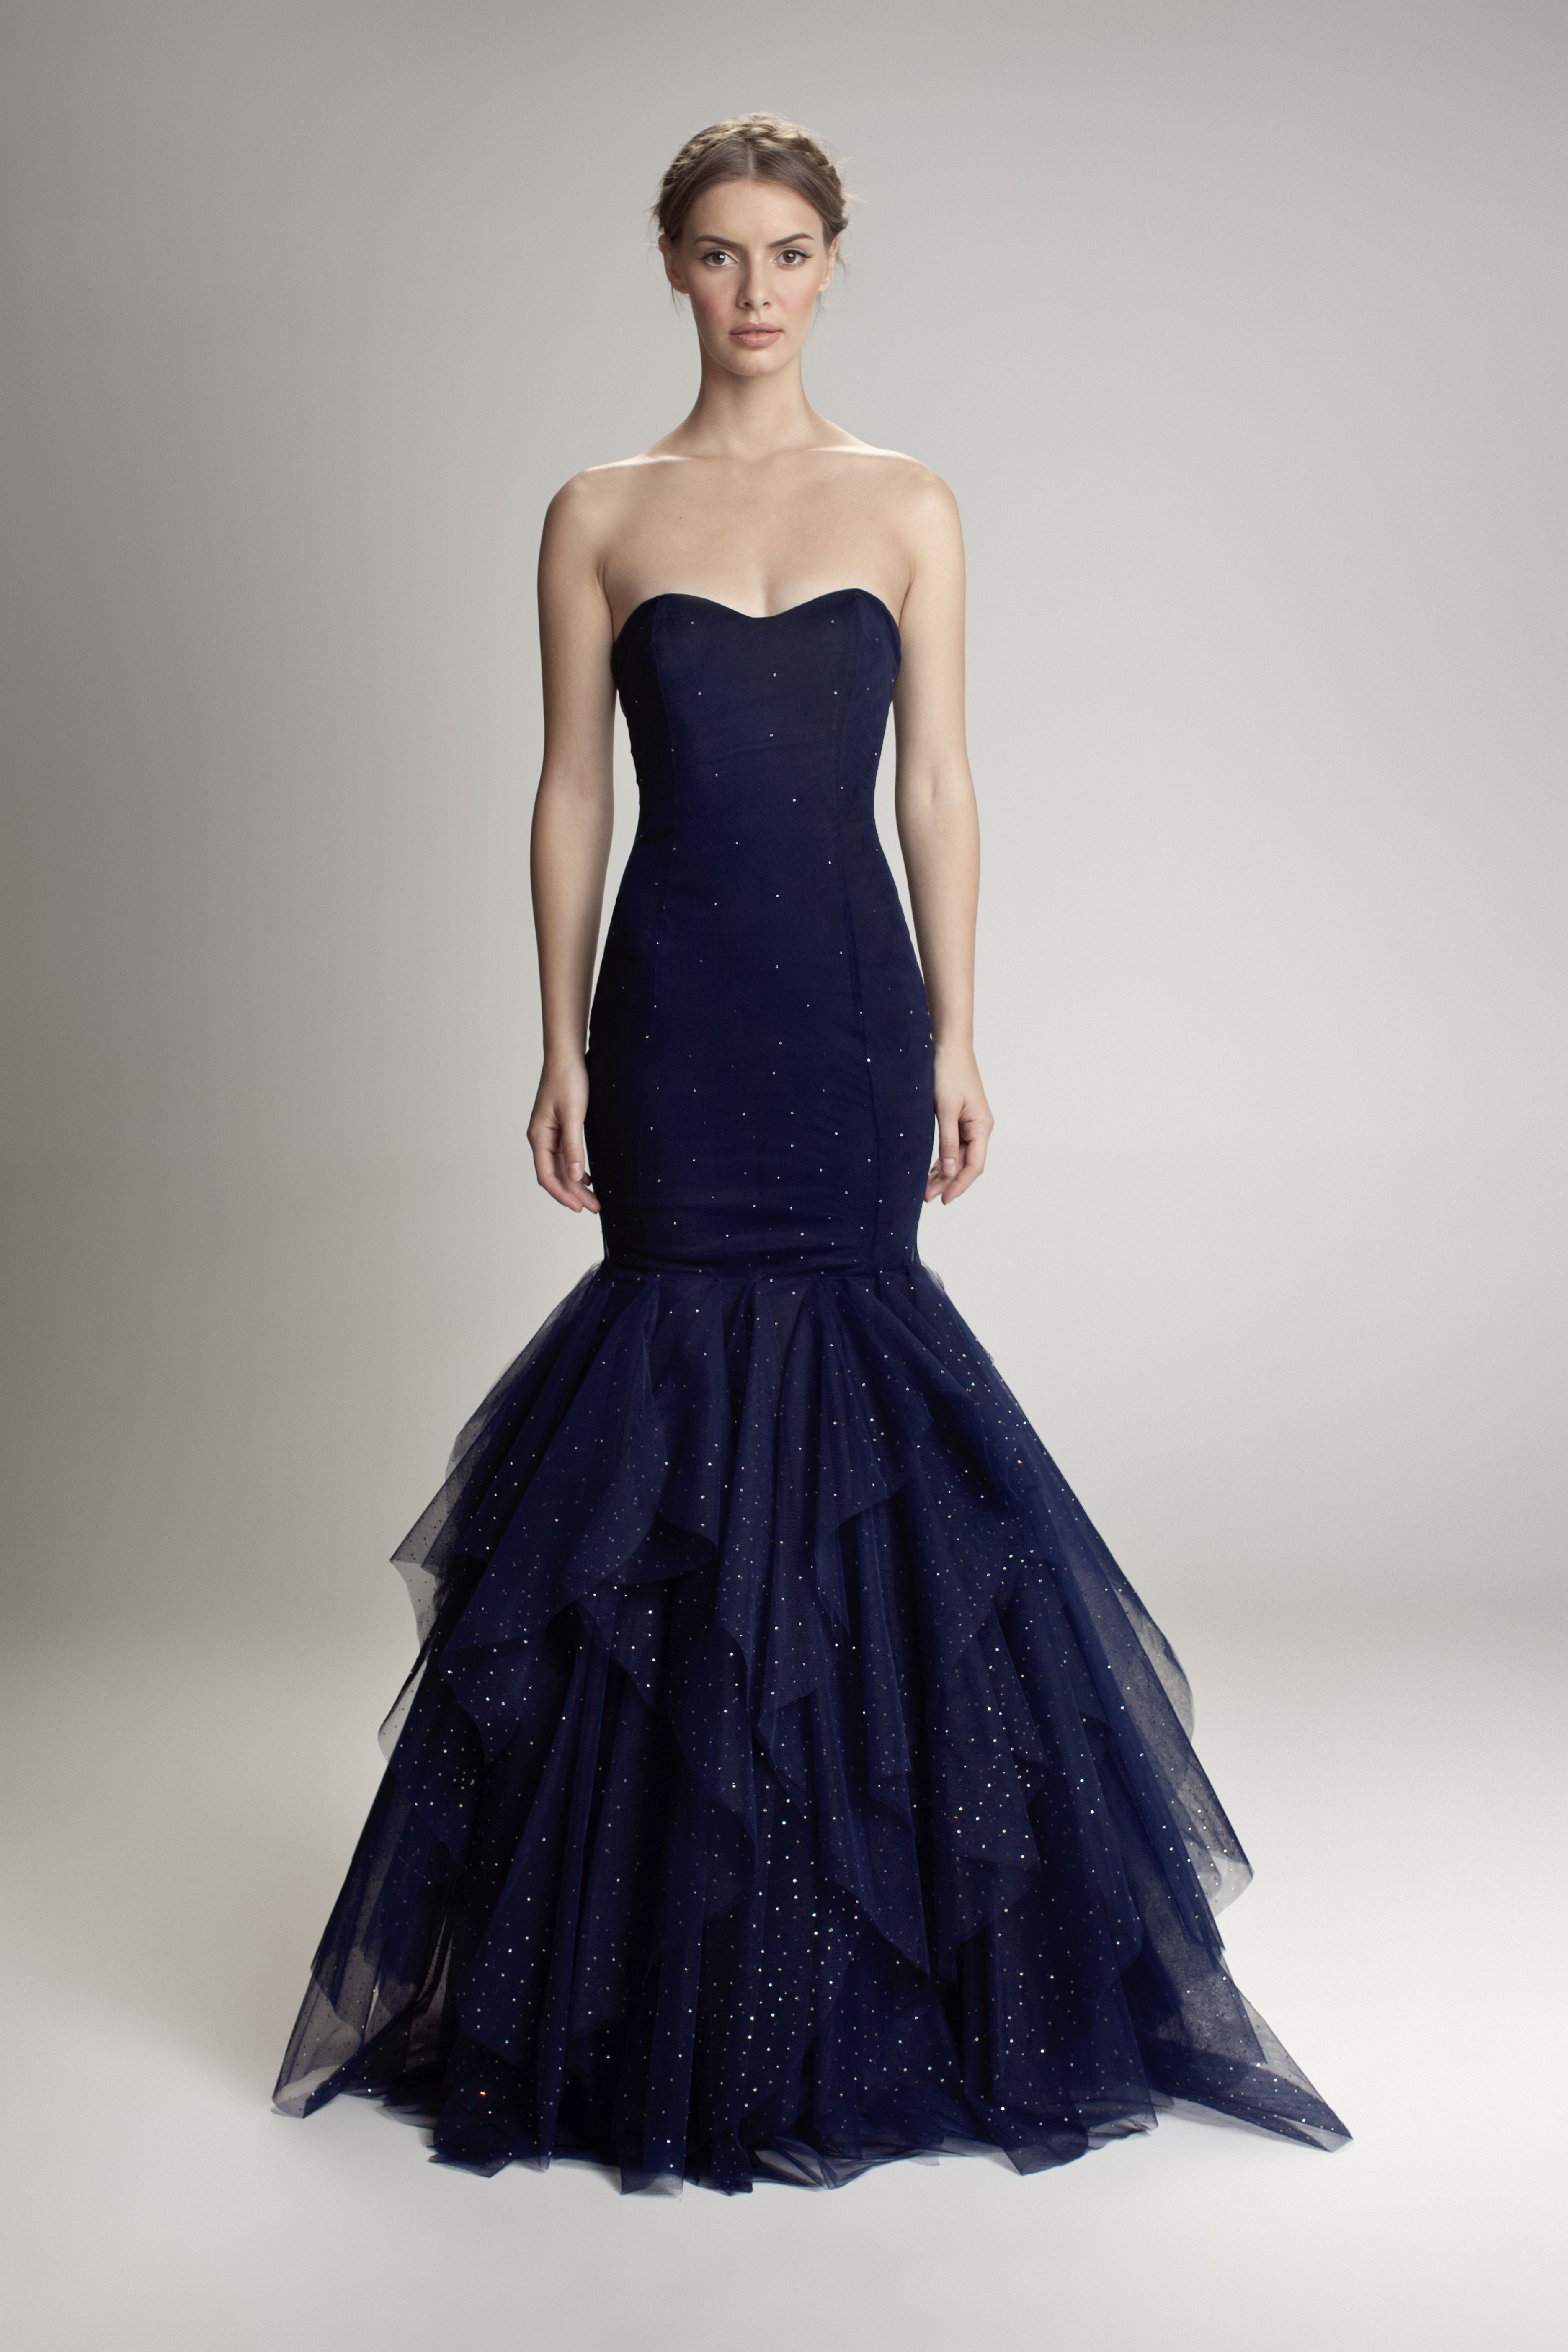 Midnight blue crystallized dress fashion in pinterest